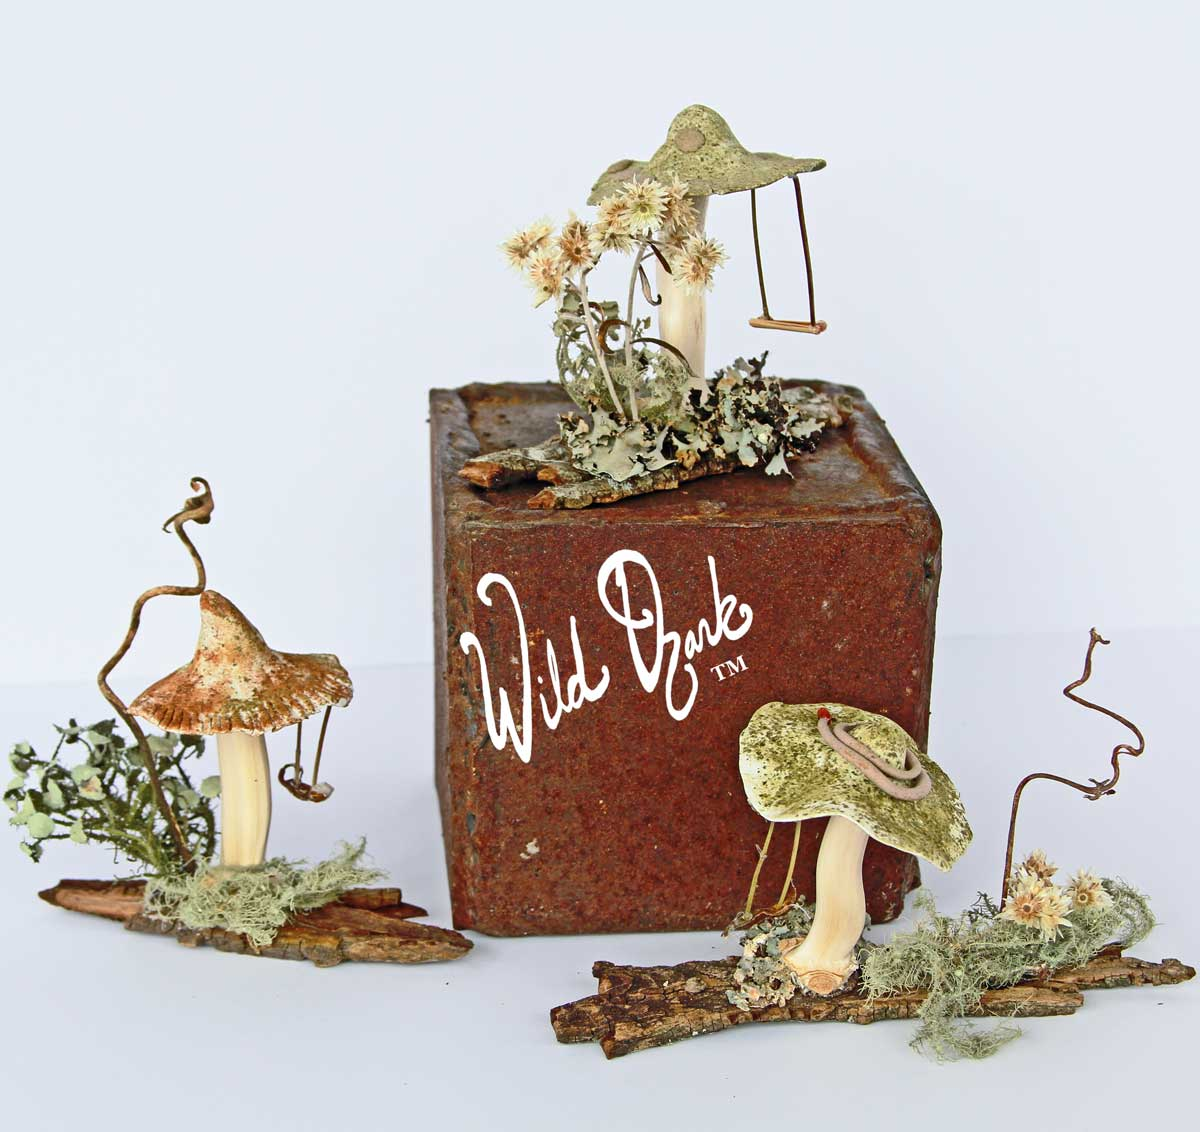 Fairy Swing Mushrooms- New Nature Art from Wild Ozark.